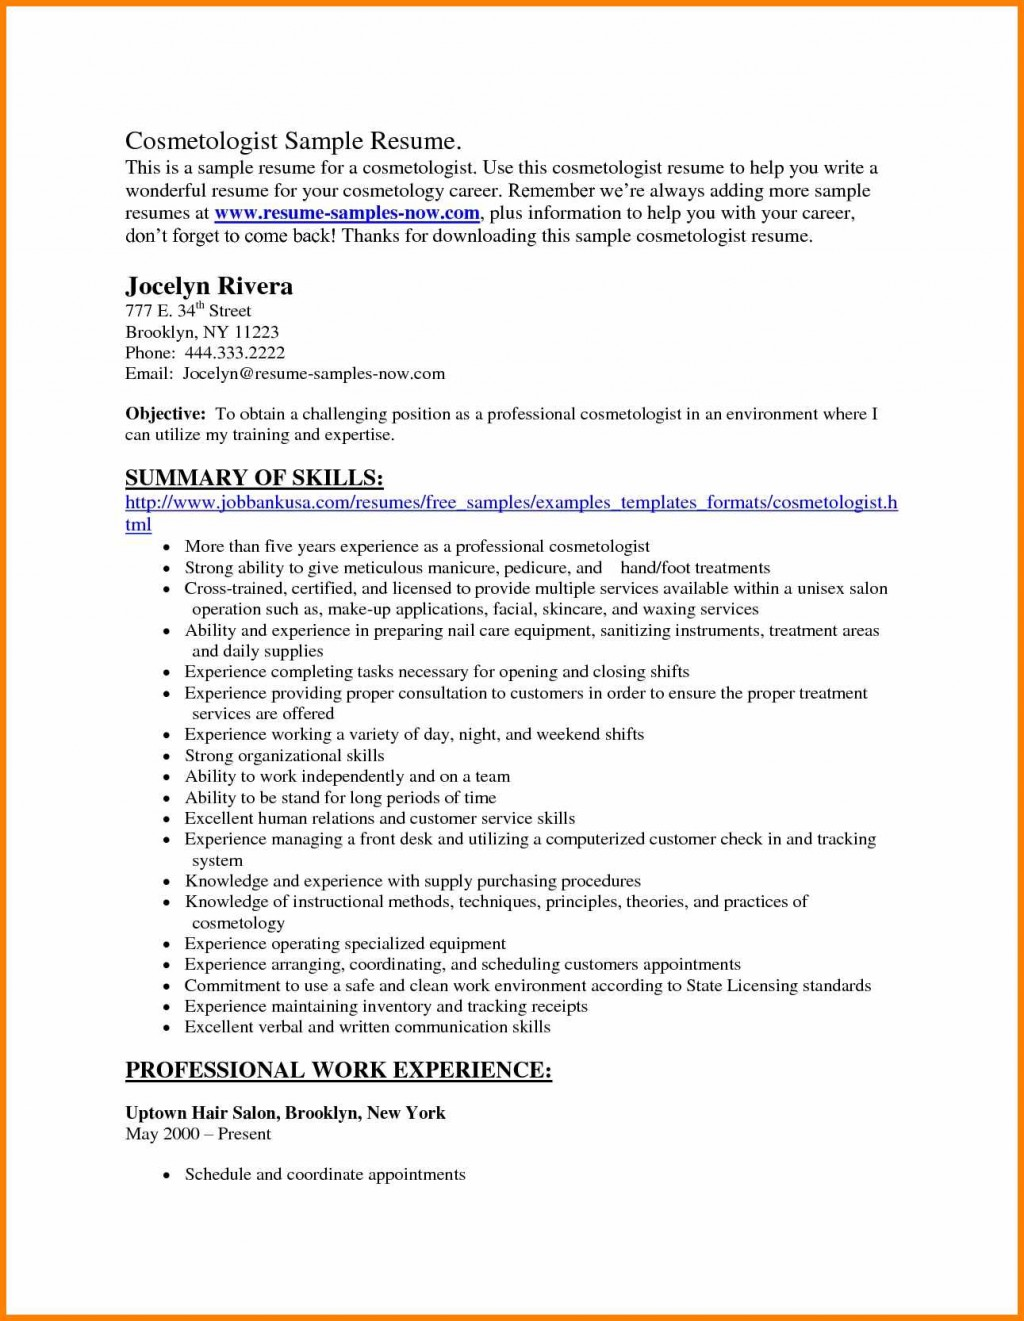 014 Cosmetology Resume Objective Waa Mood Exolgbabogadosco Temp Essays Scholarship Entrance Archaicawful Essay Examples Conclusion Large